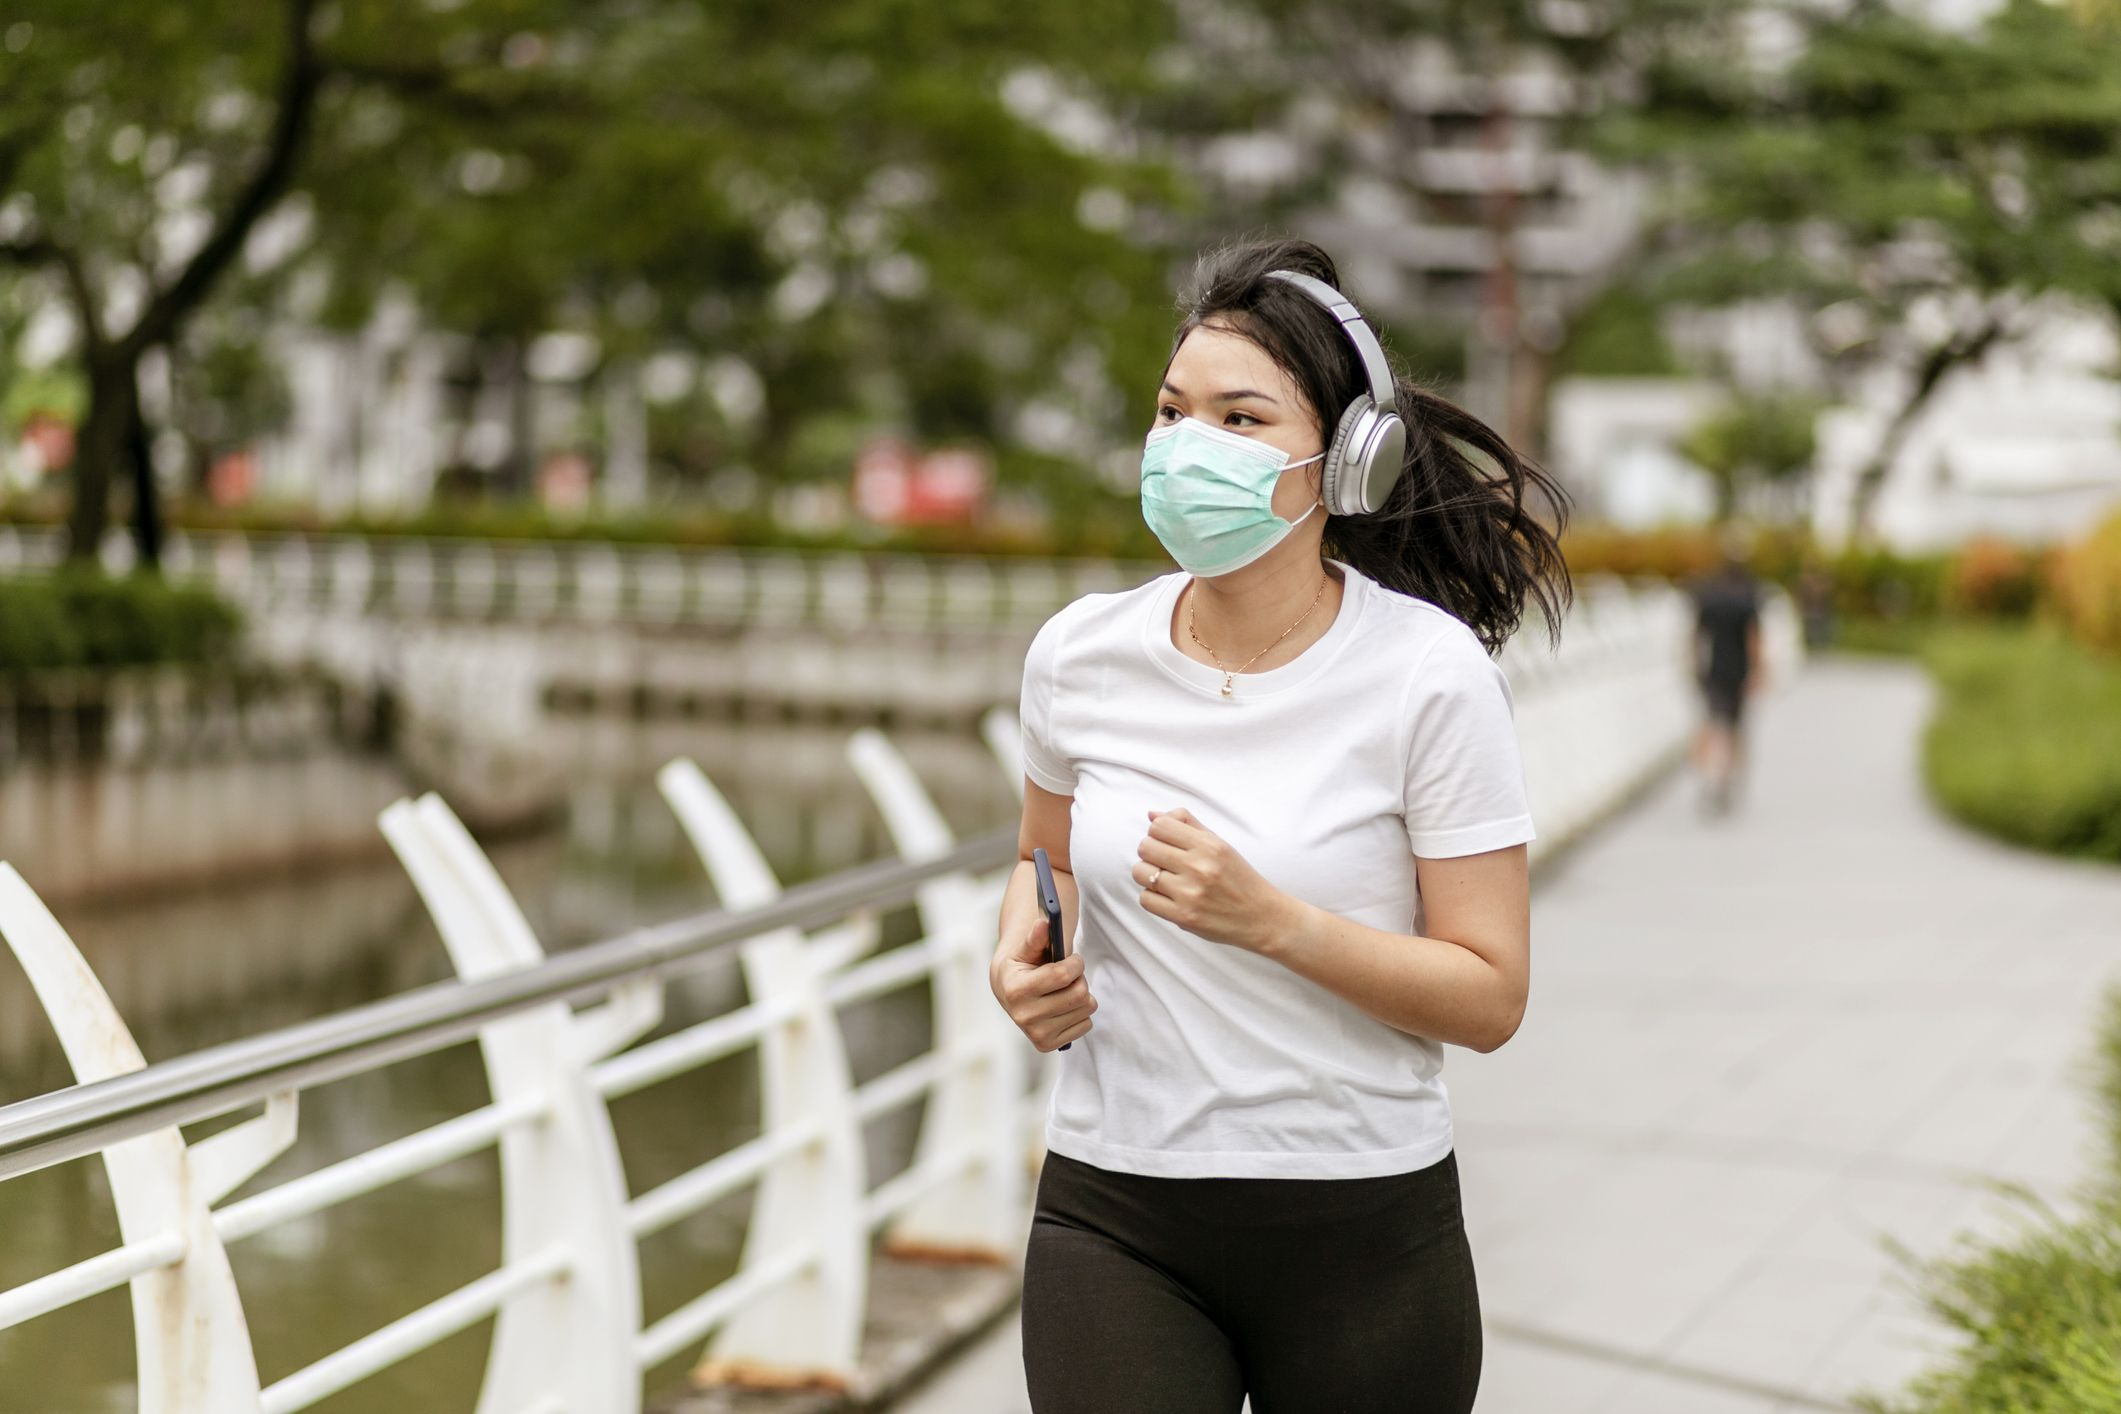 Should I Wear a Mask While Running?